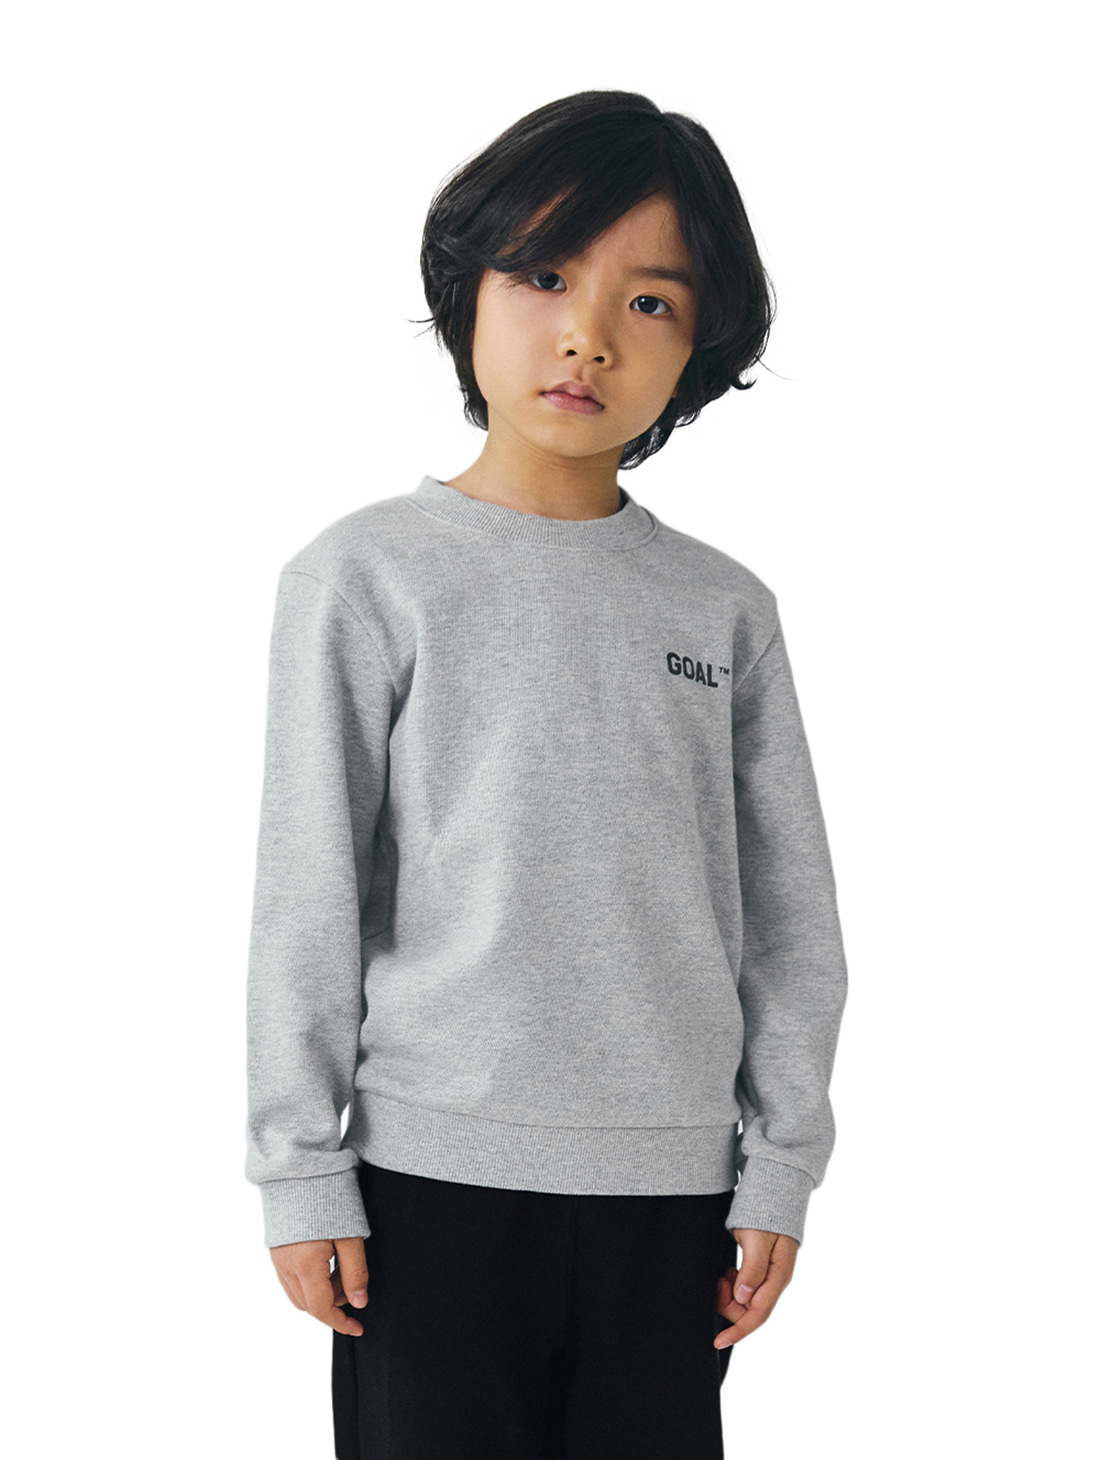 GOALSTUDIO (KIDS) BACK LOGO SWEATSHIRTS - GREY